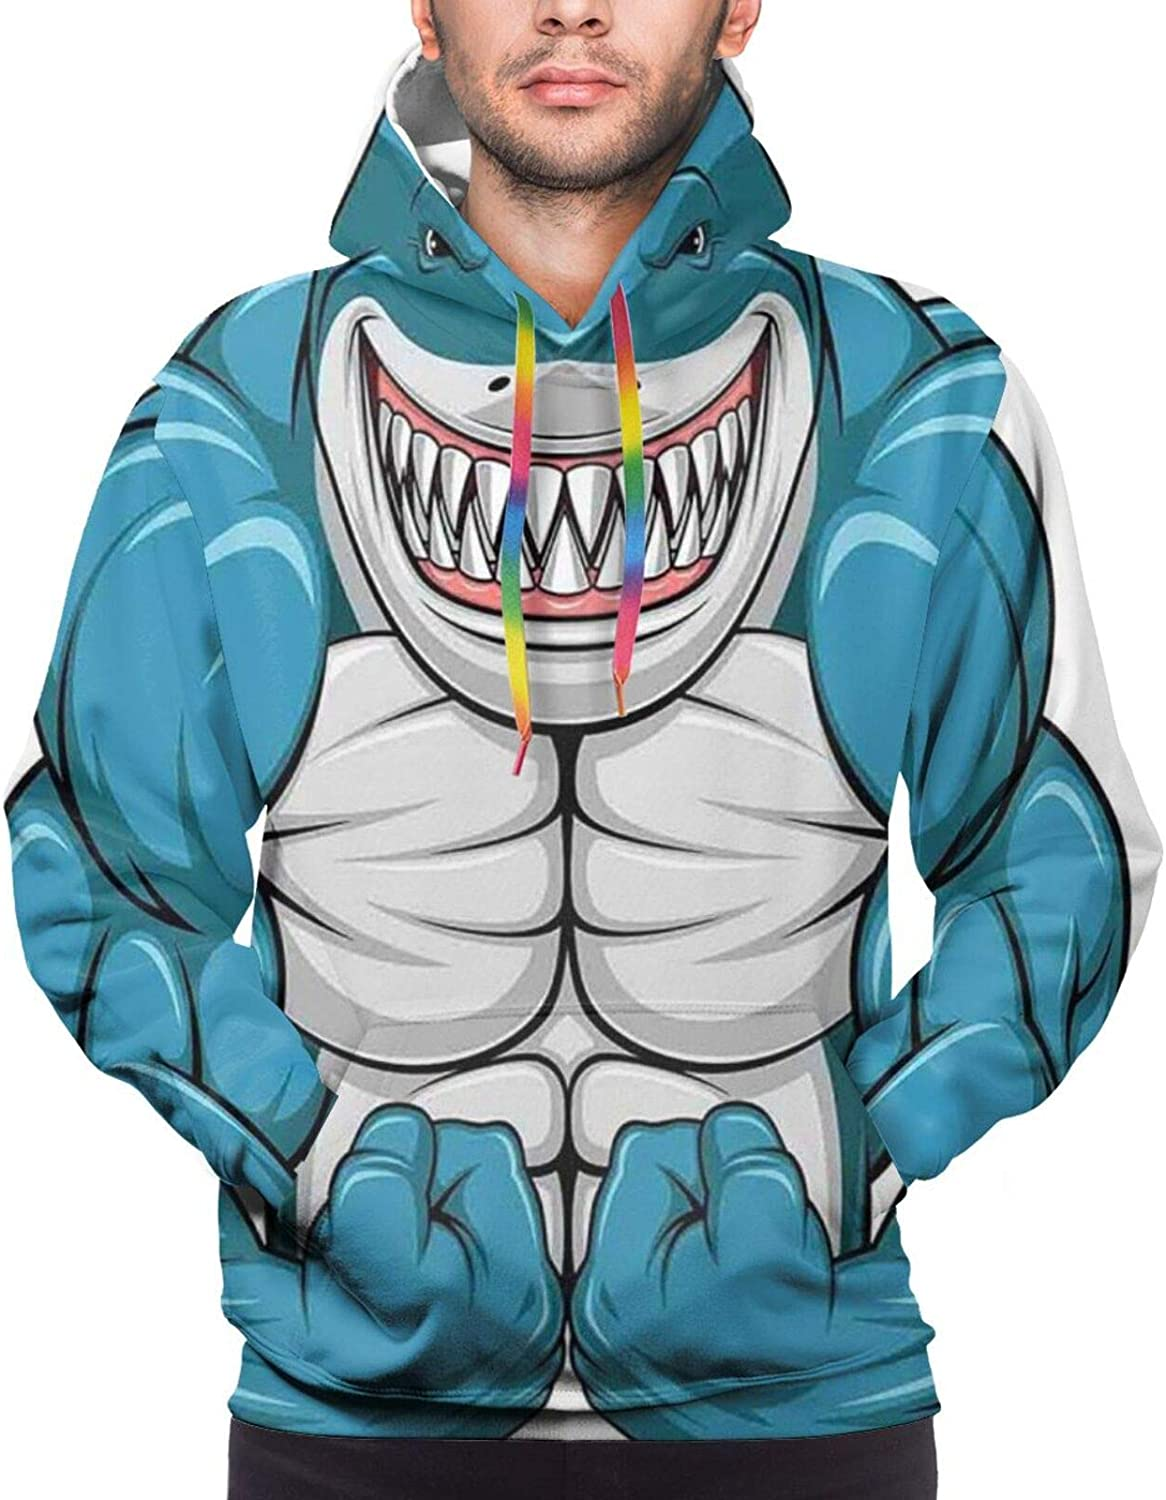 Men's Hoodies Sweatshirts,A Smiling Toothy White Shark with Big Muscles On Arms Illustration Print,Small